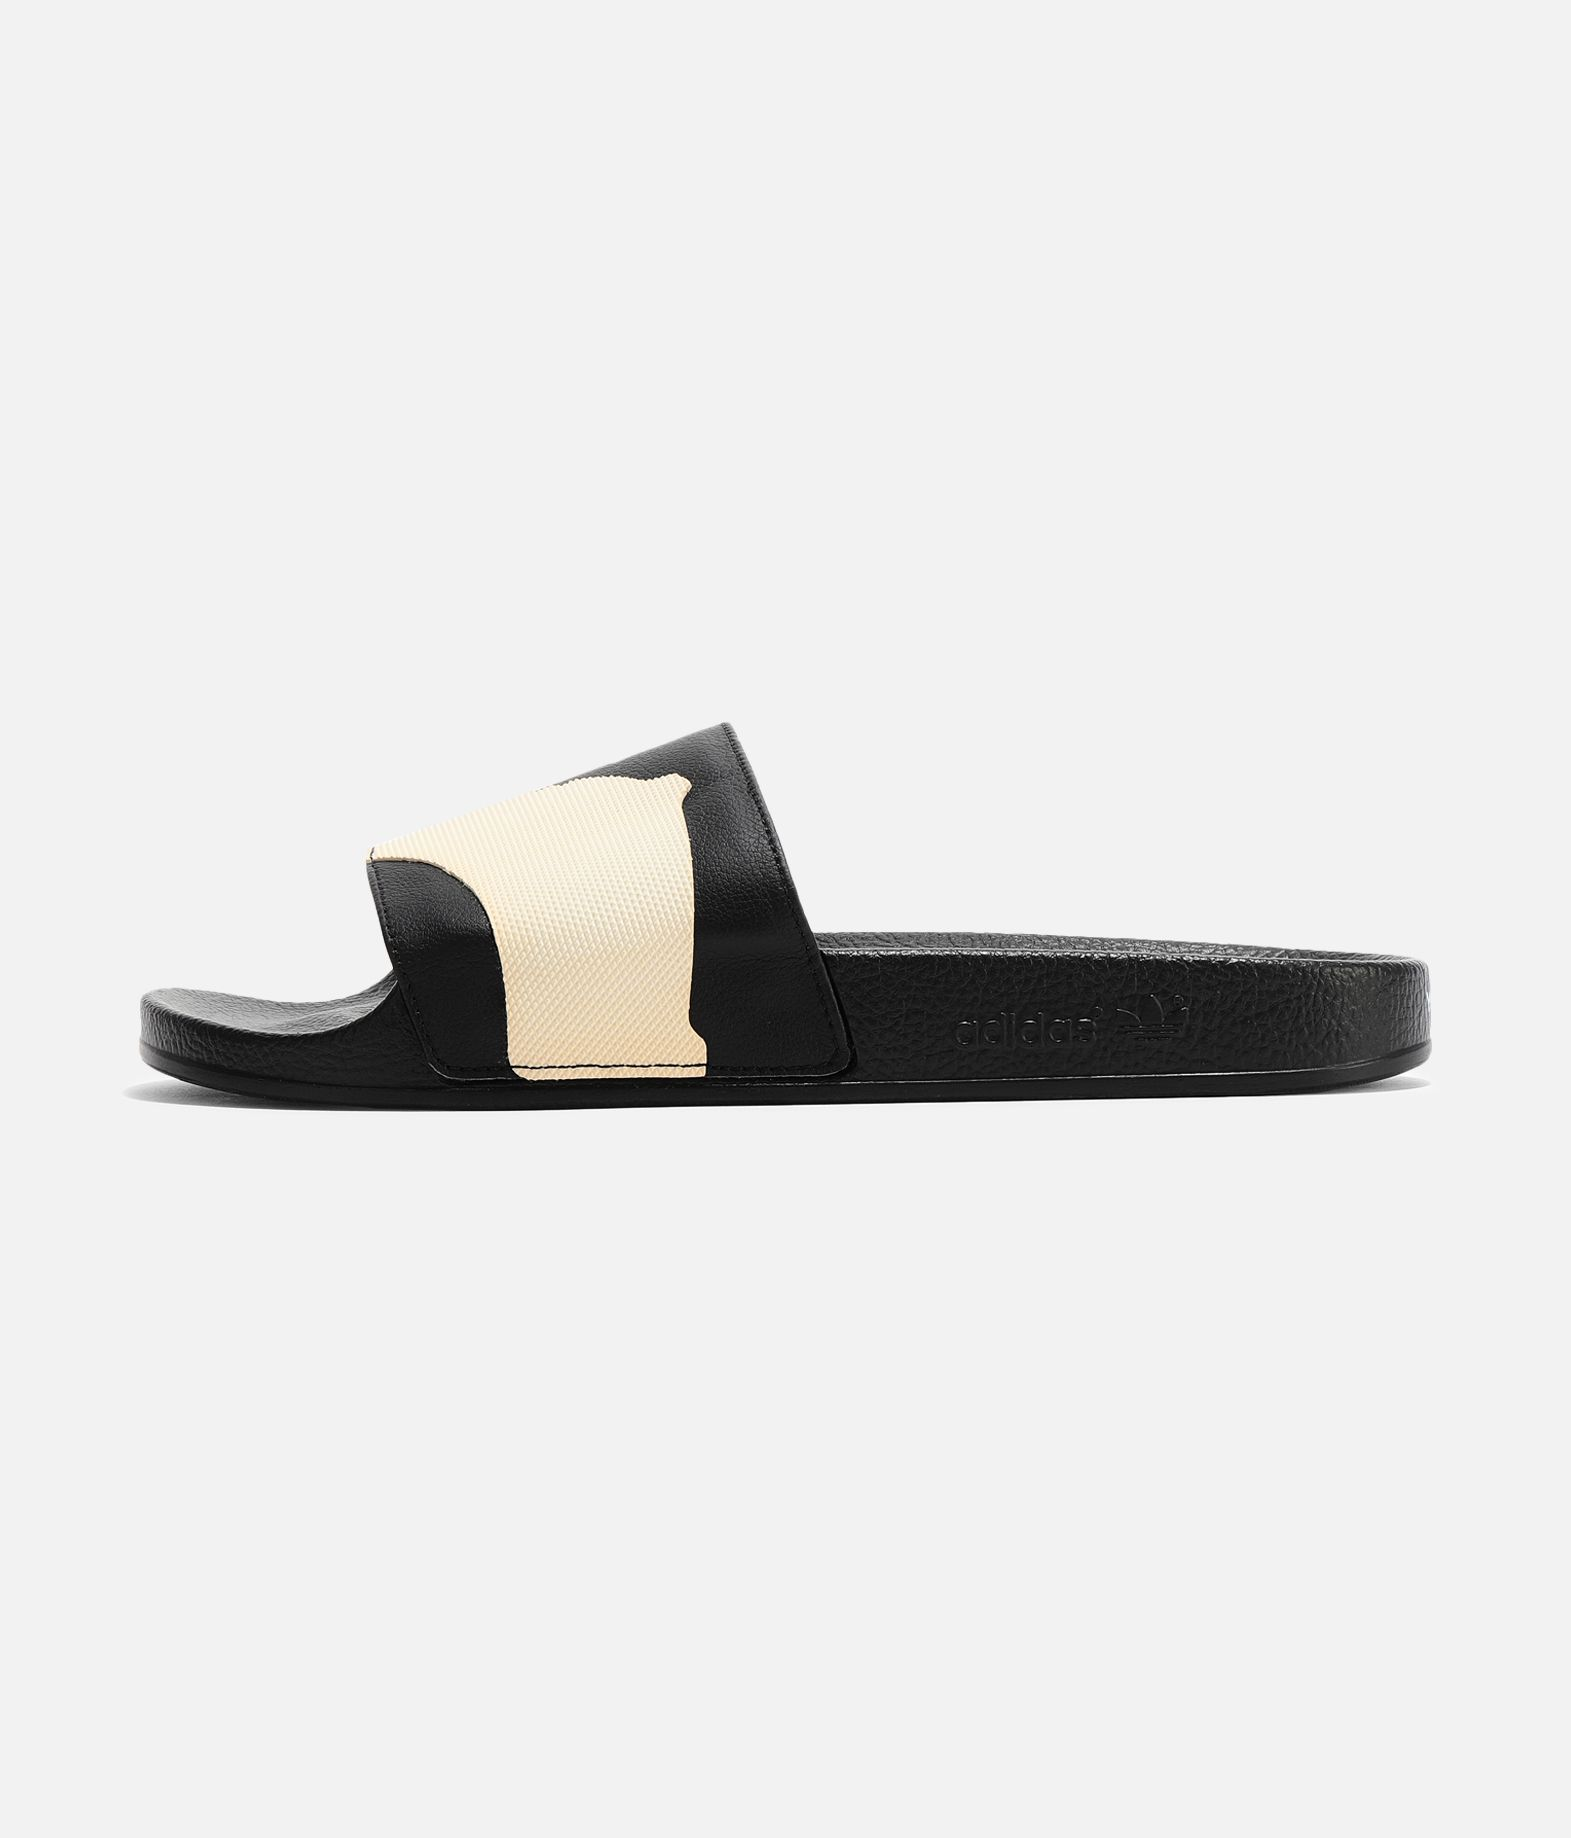 Y-3 Online Store - Available now - Y-3 Adilette